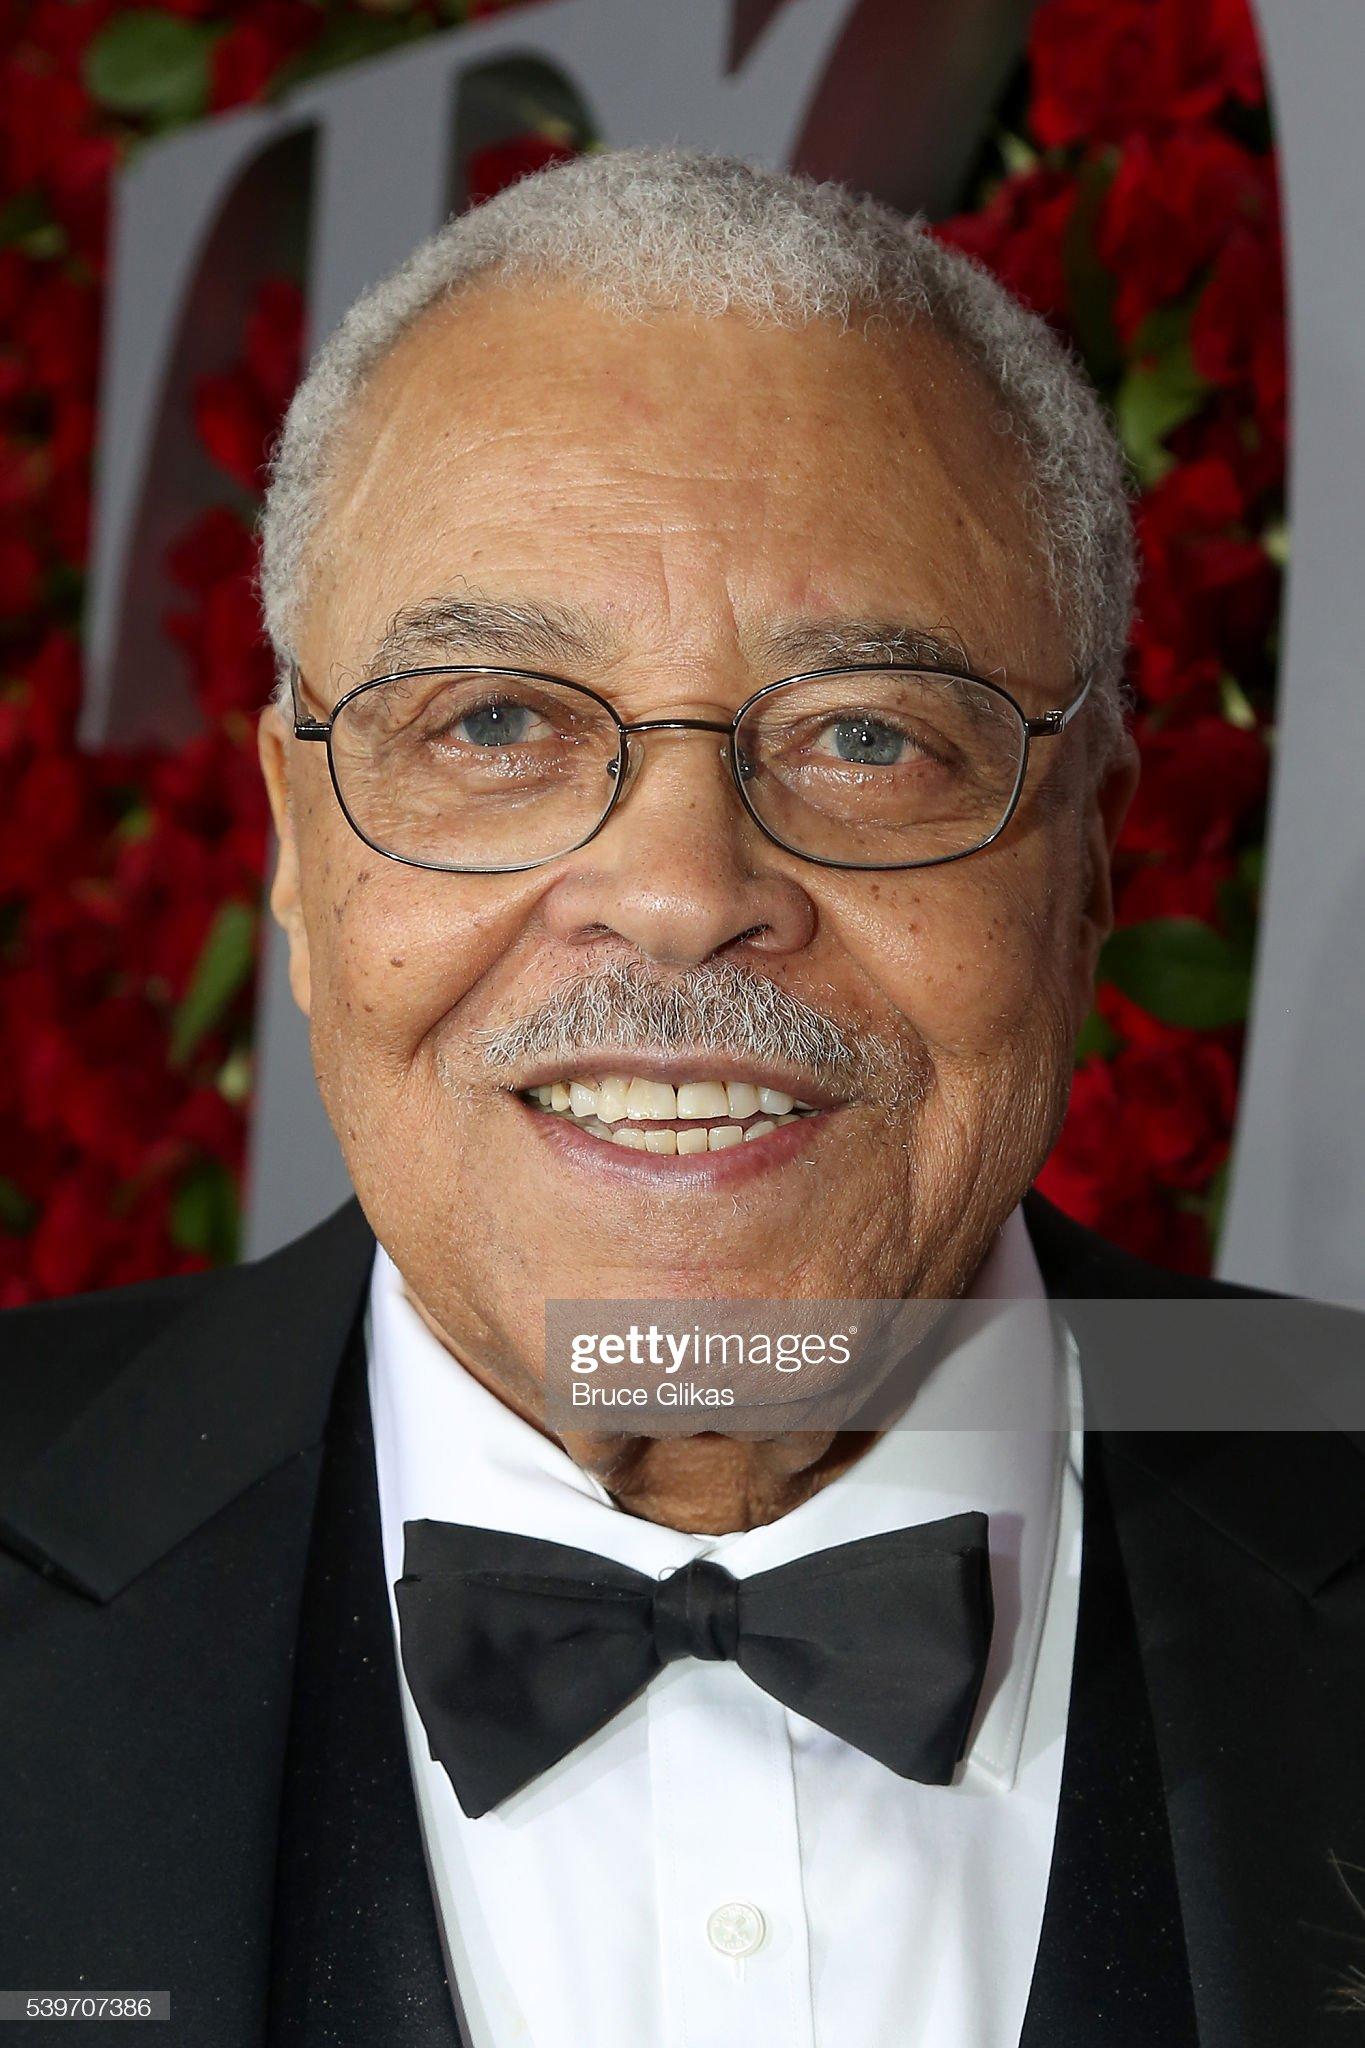 COLOR DE OJOS (clasificación y debate de personas famosas) - Página 11 Actor-james-earl-jones-attends-70th-annual-tony-awards-arrivals-at-picture-id539707386?s=2048x2048